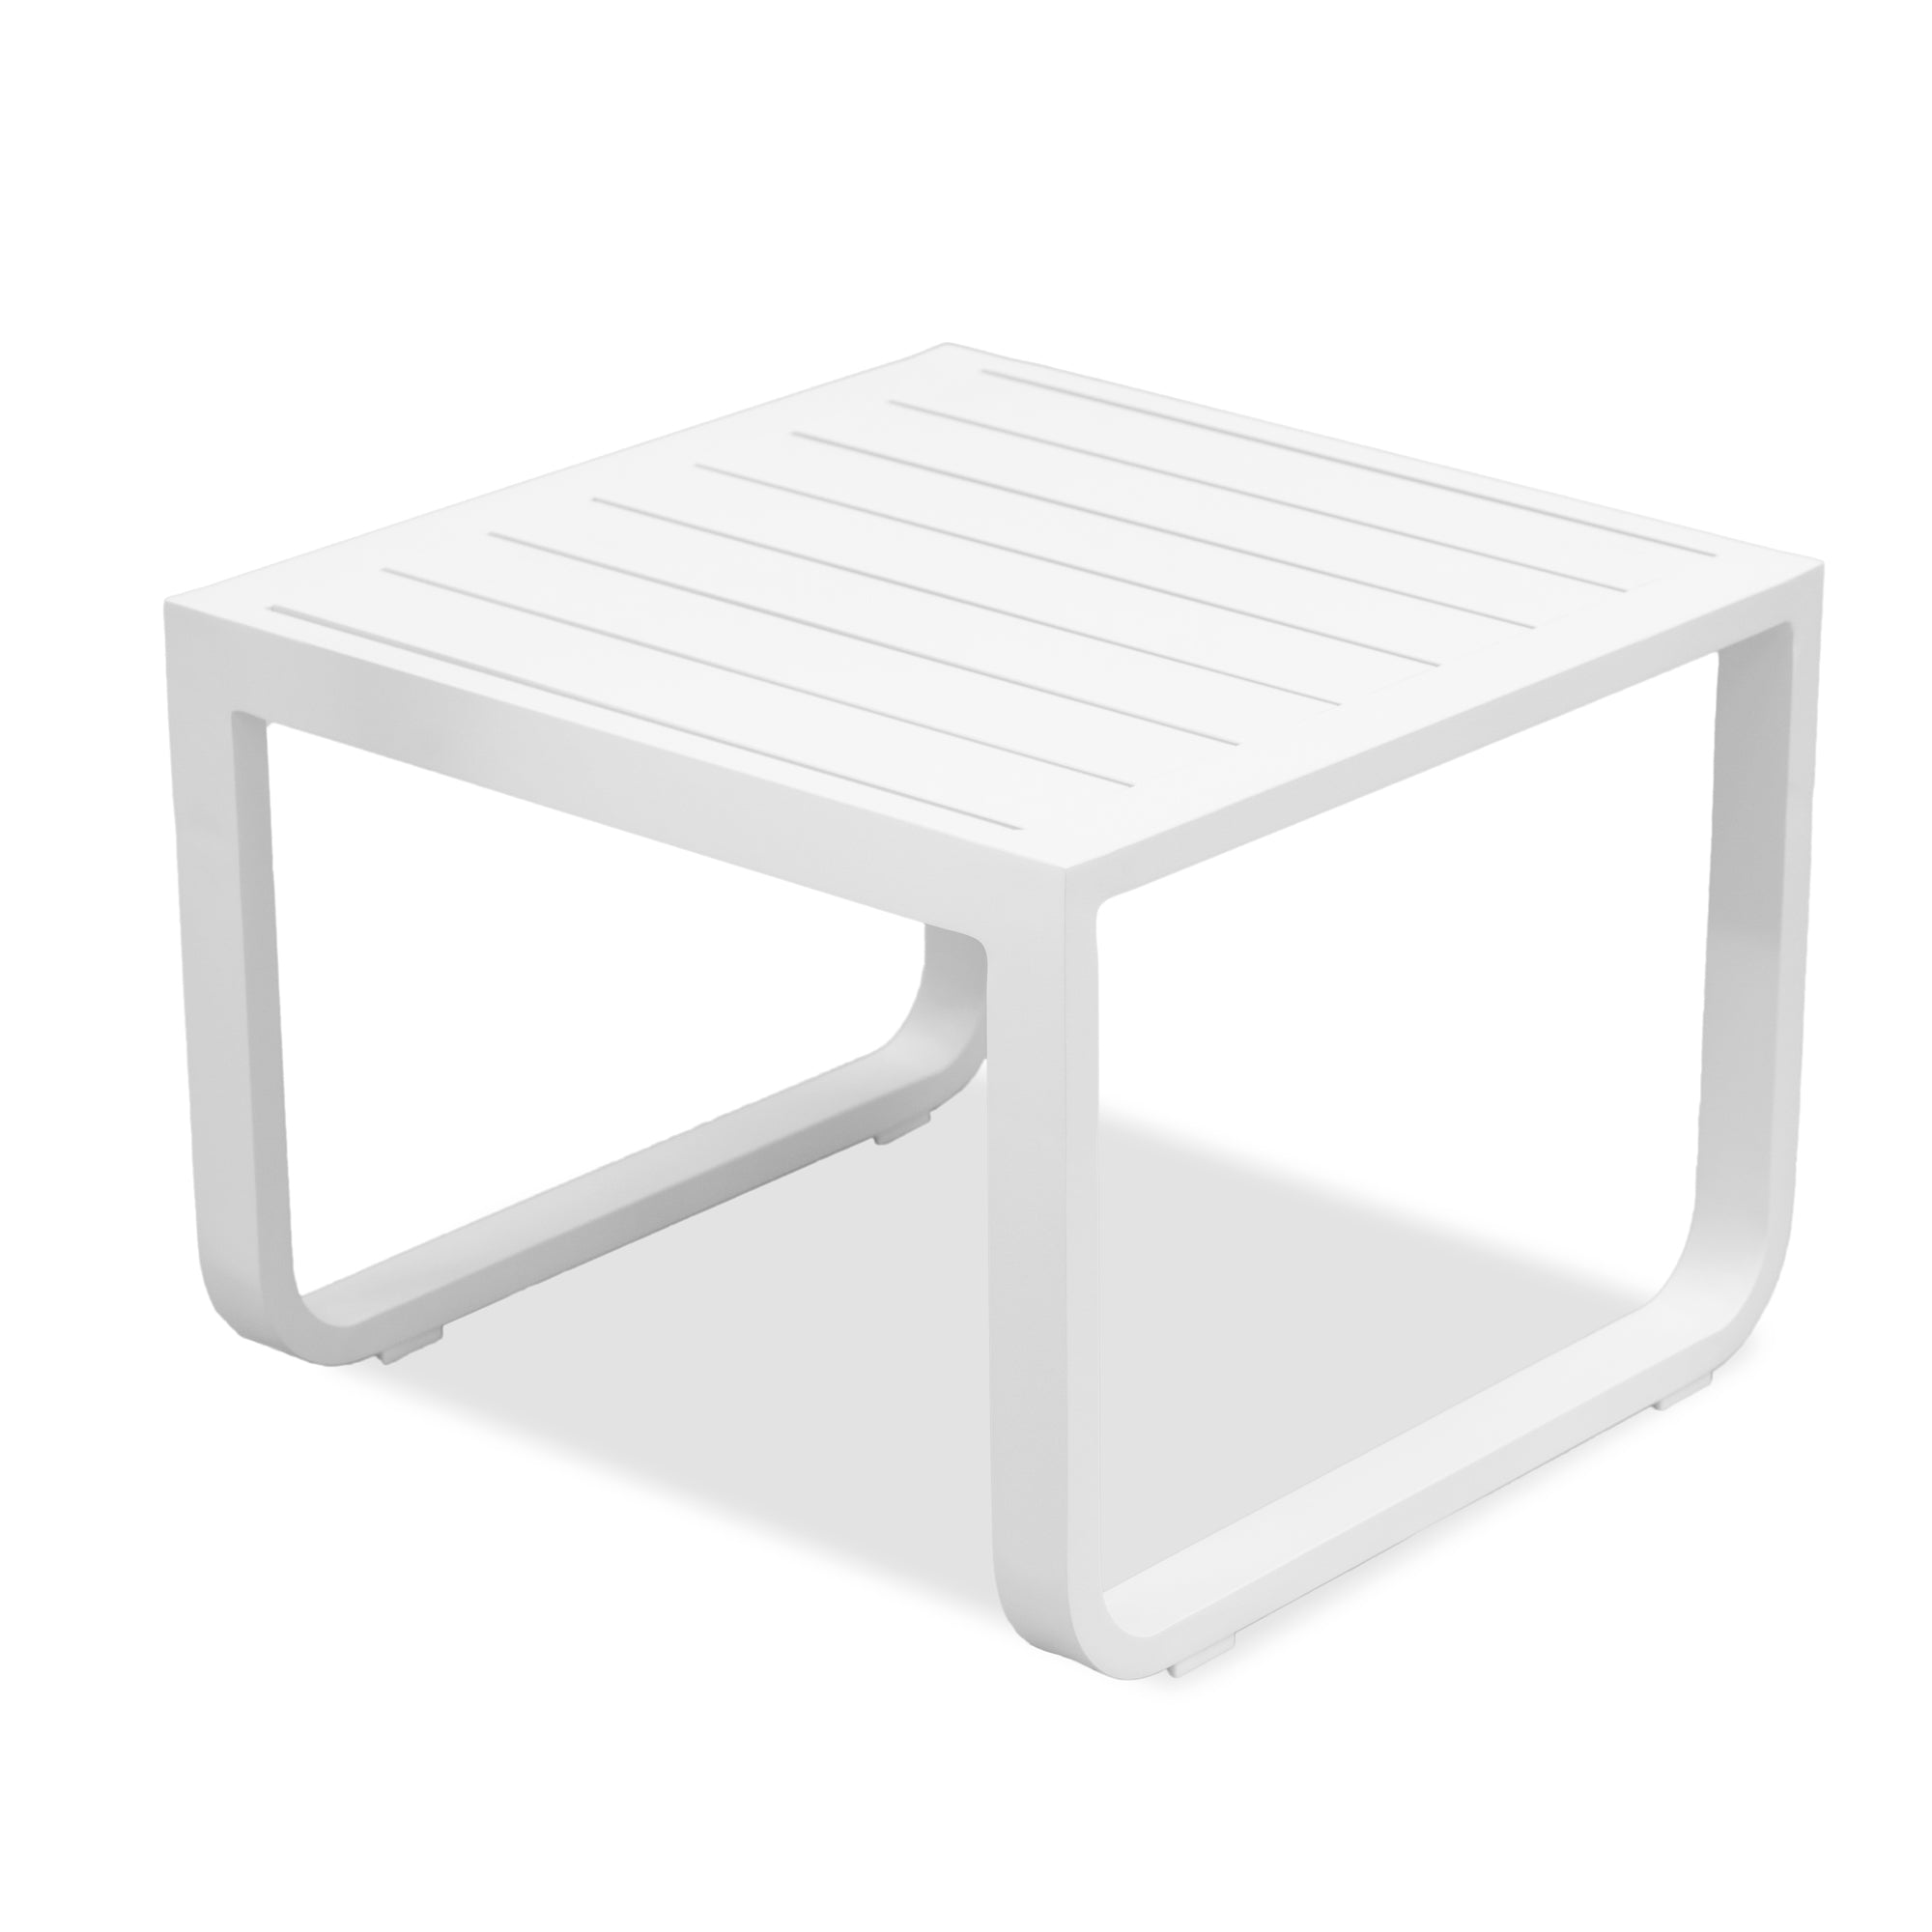 Eleve Outdoor Side Table, Side Table - Home-Buy Interiors